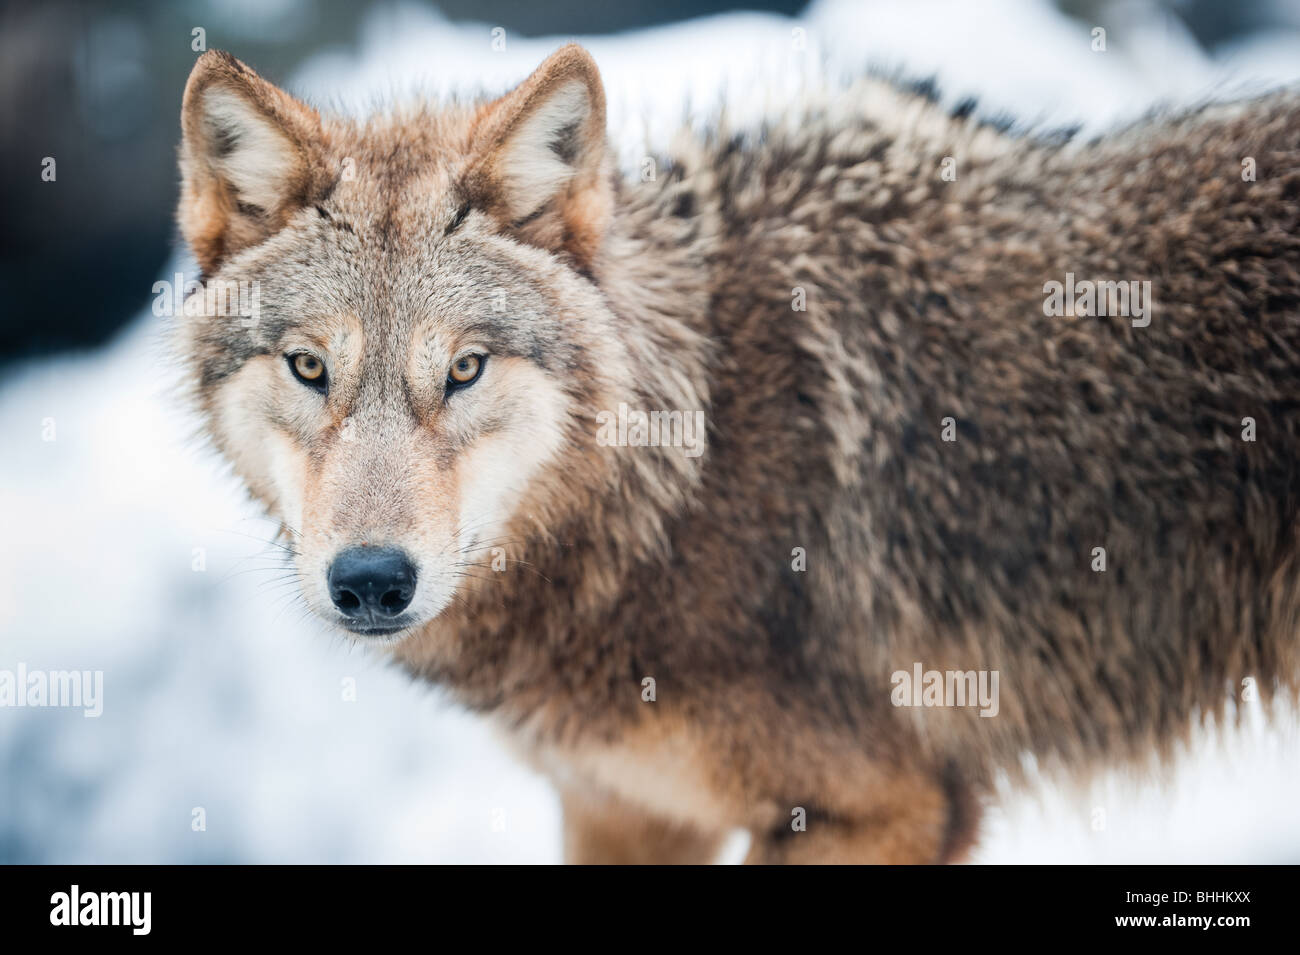 wolf (lat. Canis lupus) standing in the snow, focus is on the eyes - Stock Image